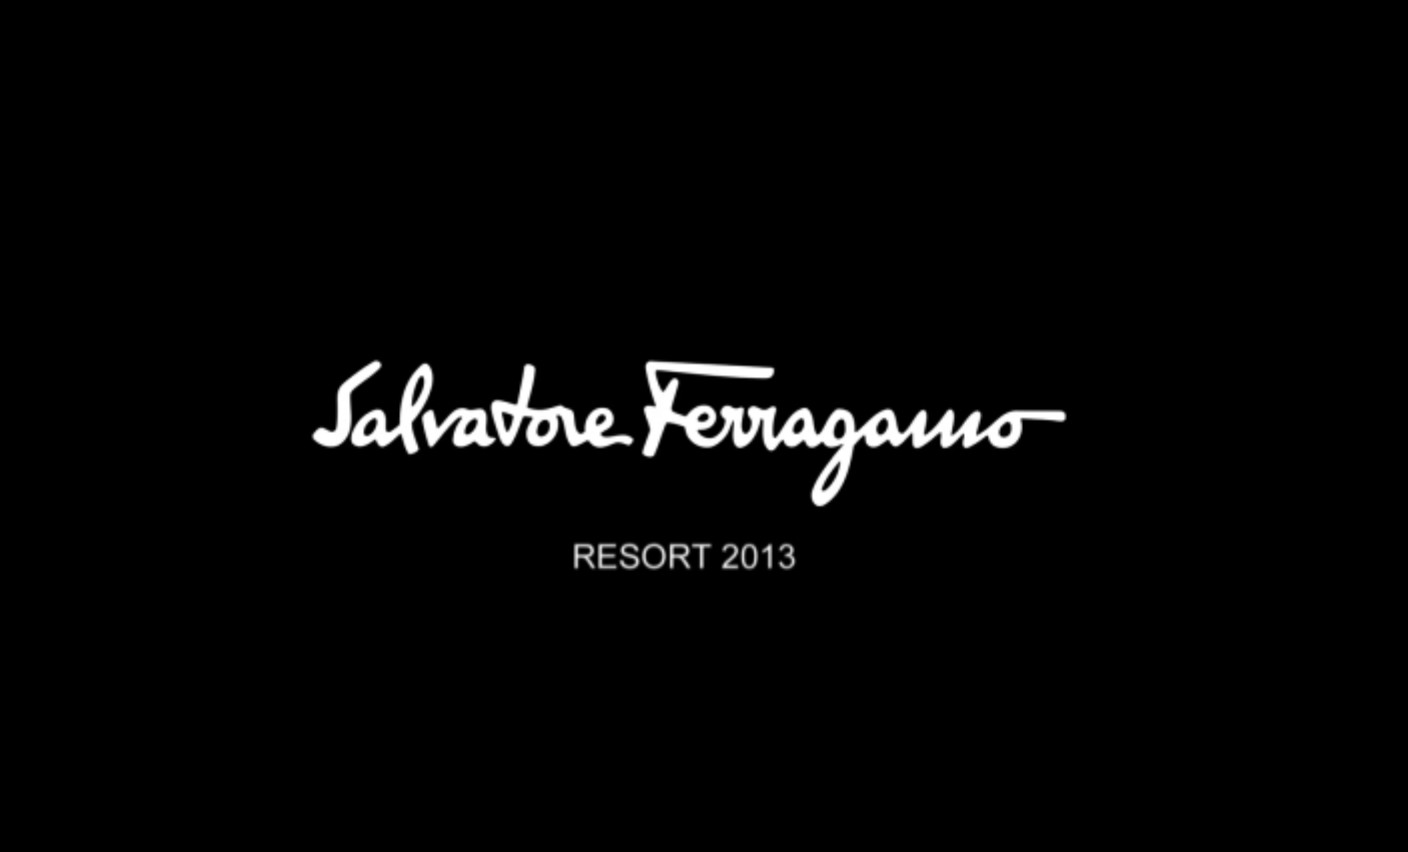 Salvatore Ferragamo Spring Summer 2013 Women's Resort Collection - Louvre Event